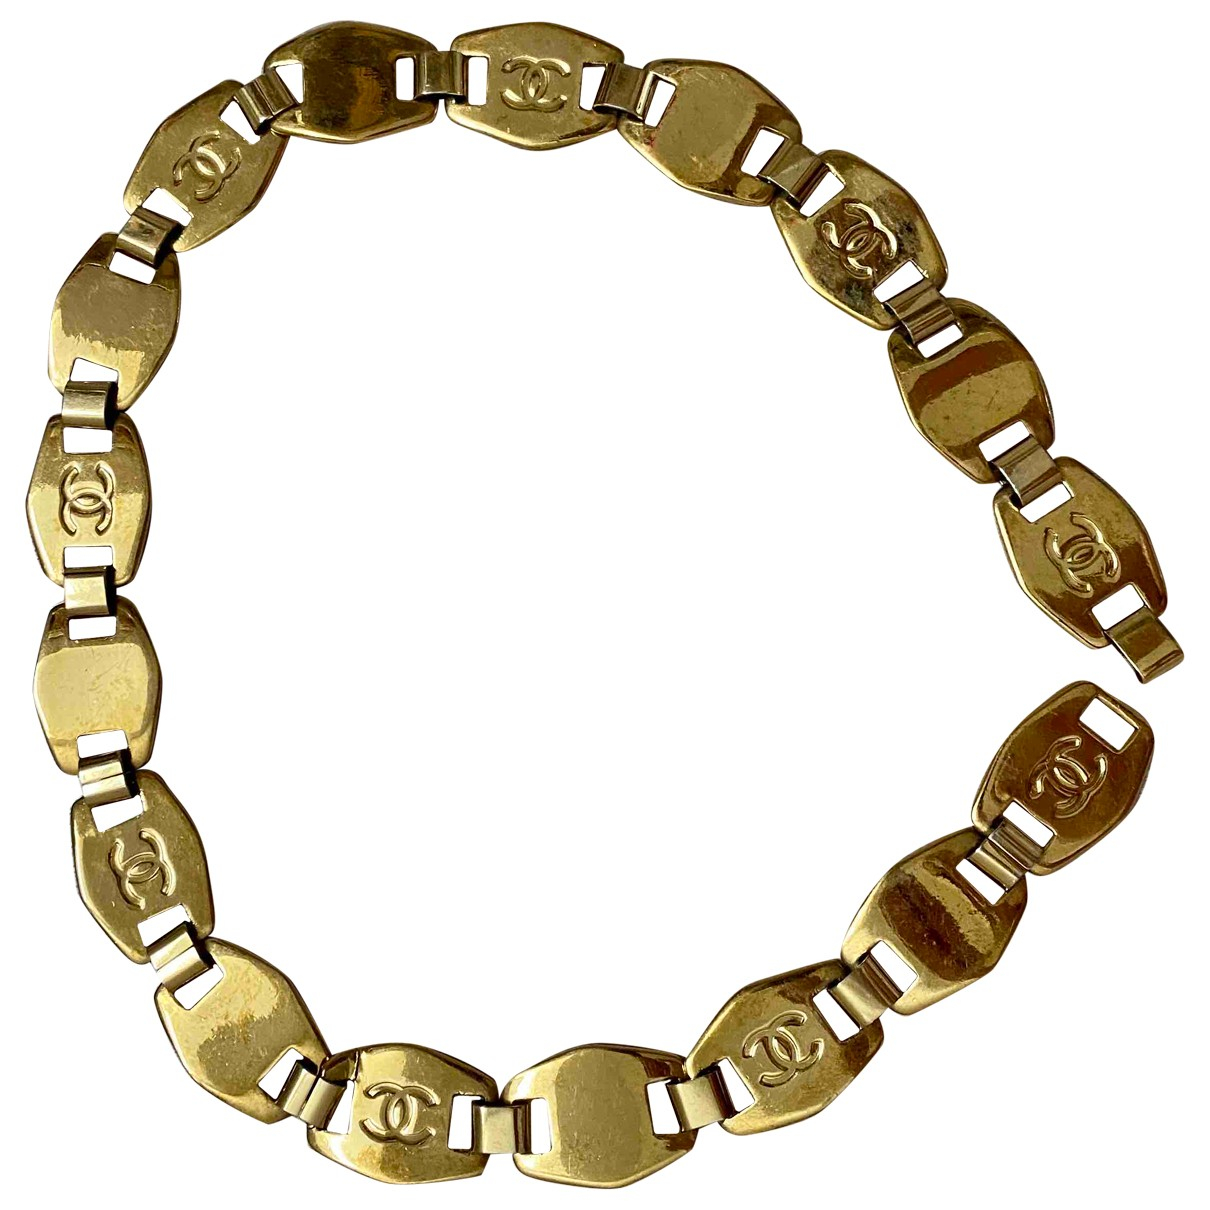 Chanel N Gold Metal belt for Women XXS International